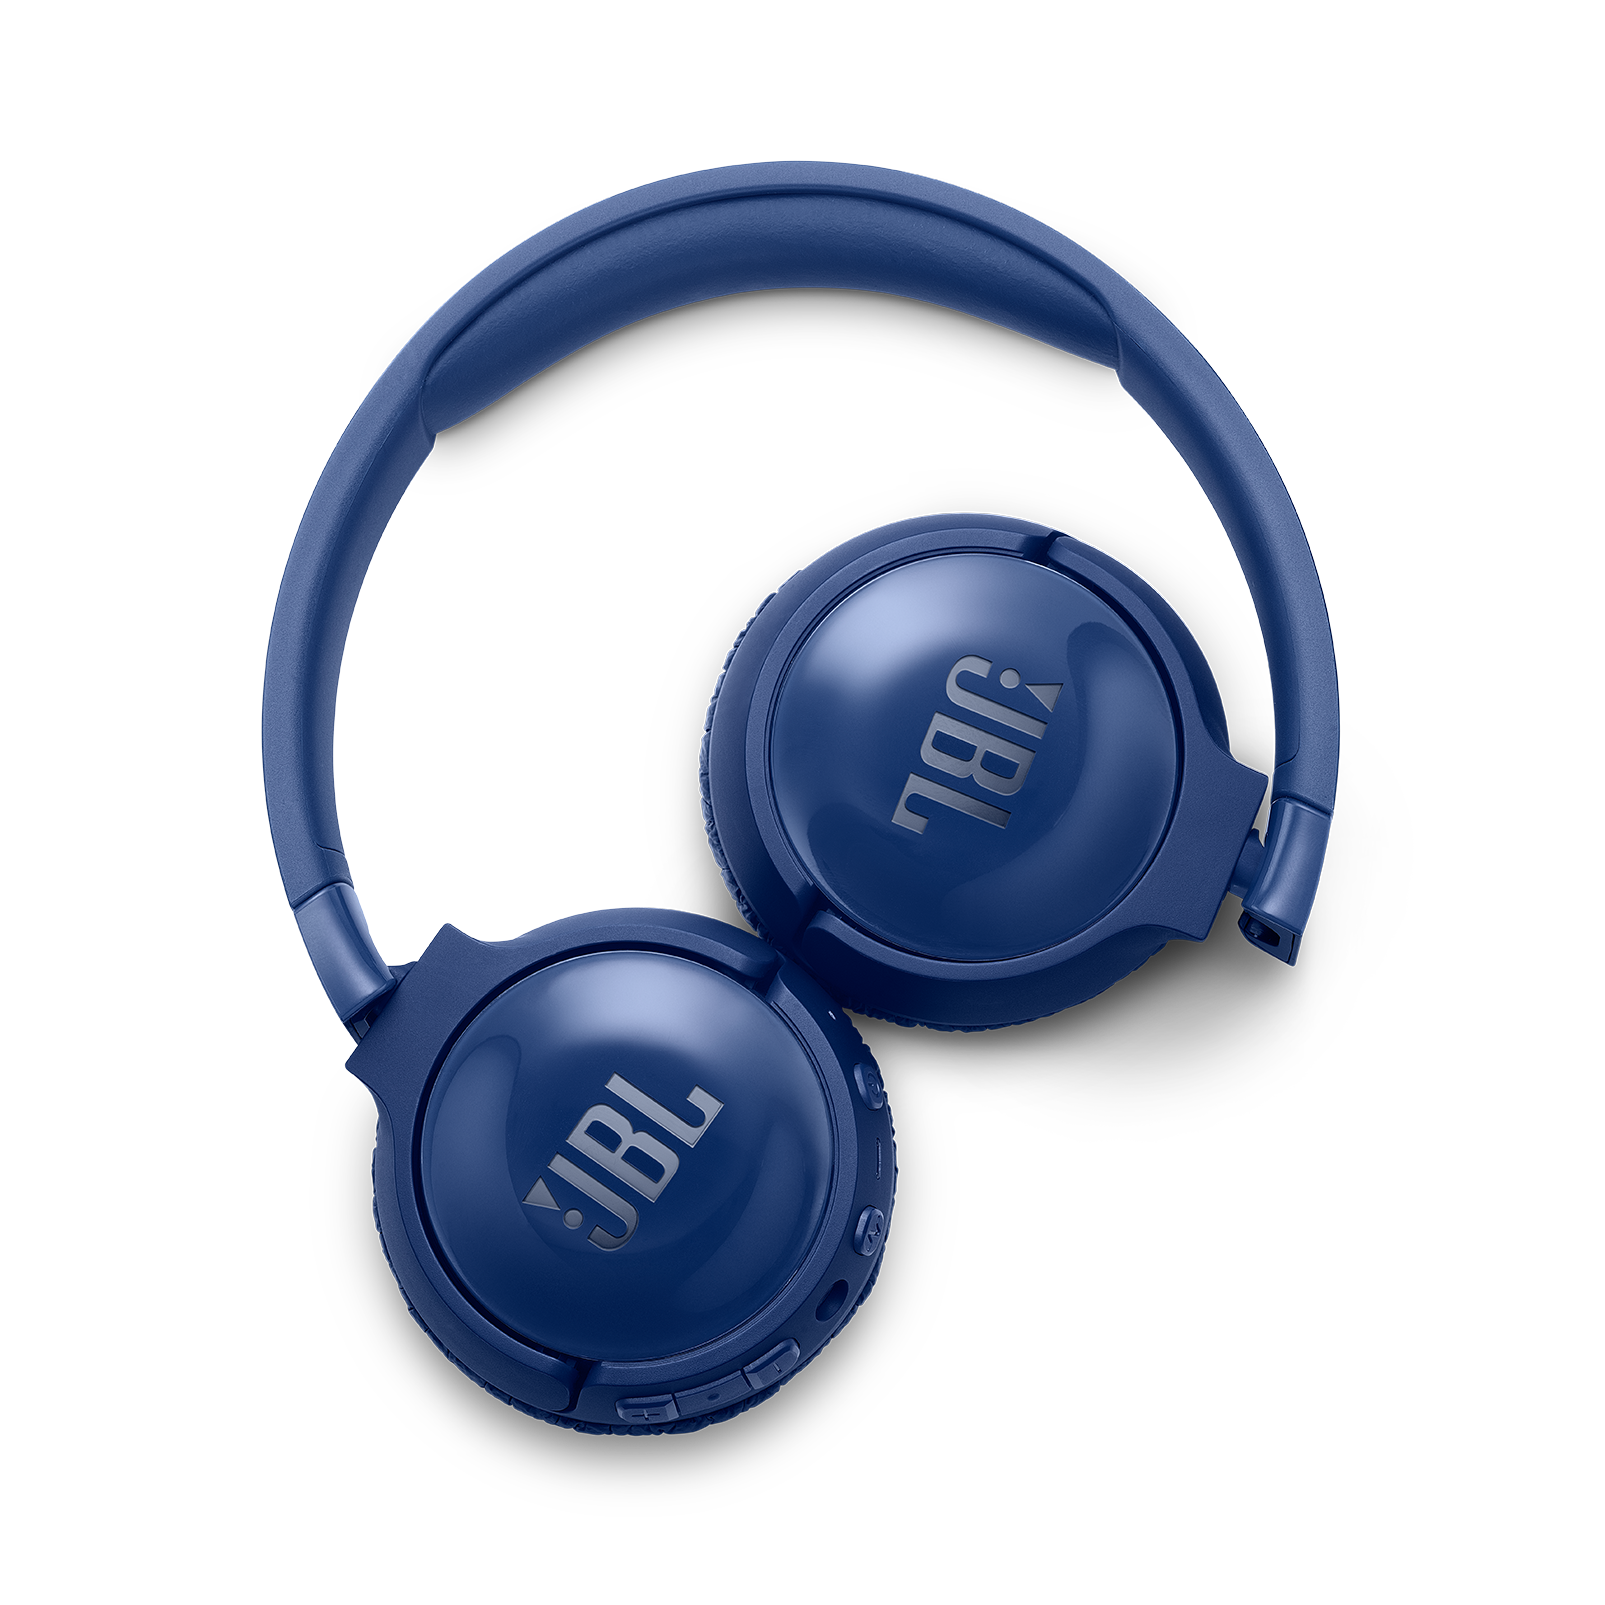 JBL TUNE 600BTNC - Blue - Wireless, on-ear, active noise-cancelling headphones. - Detailshot 4